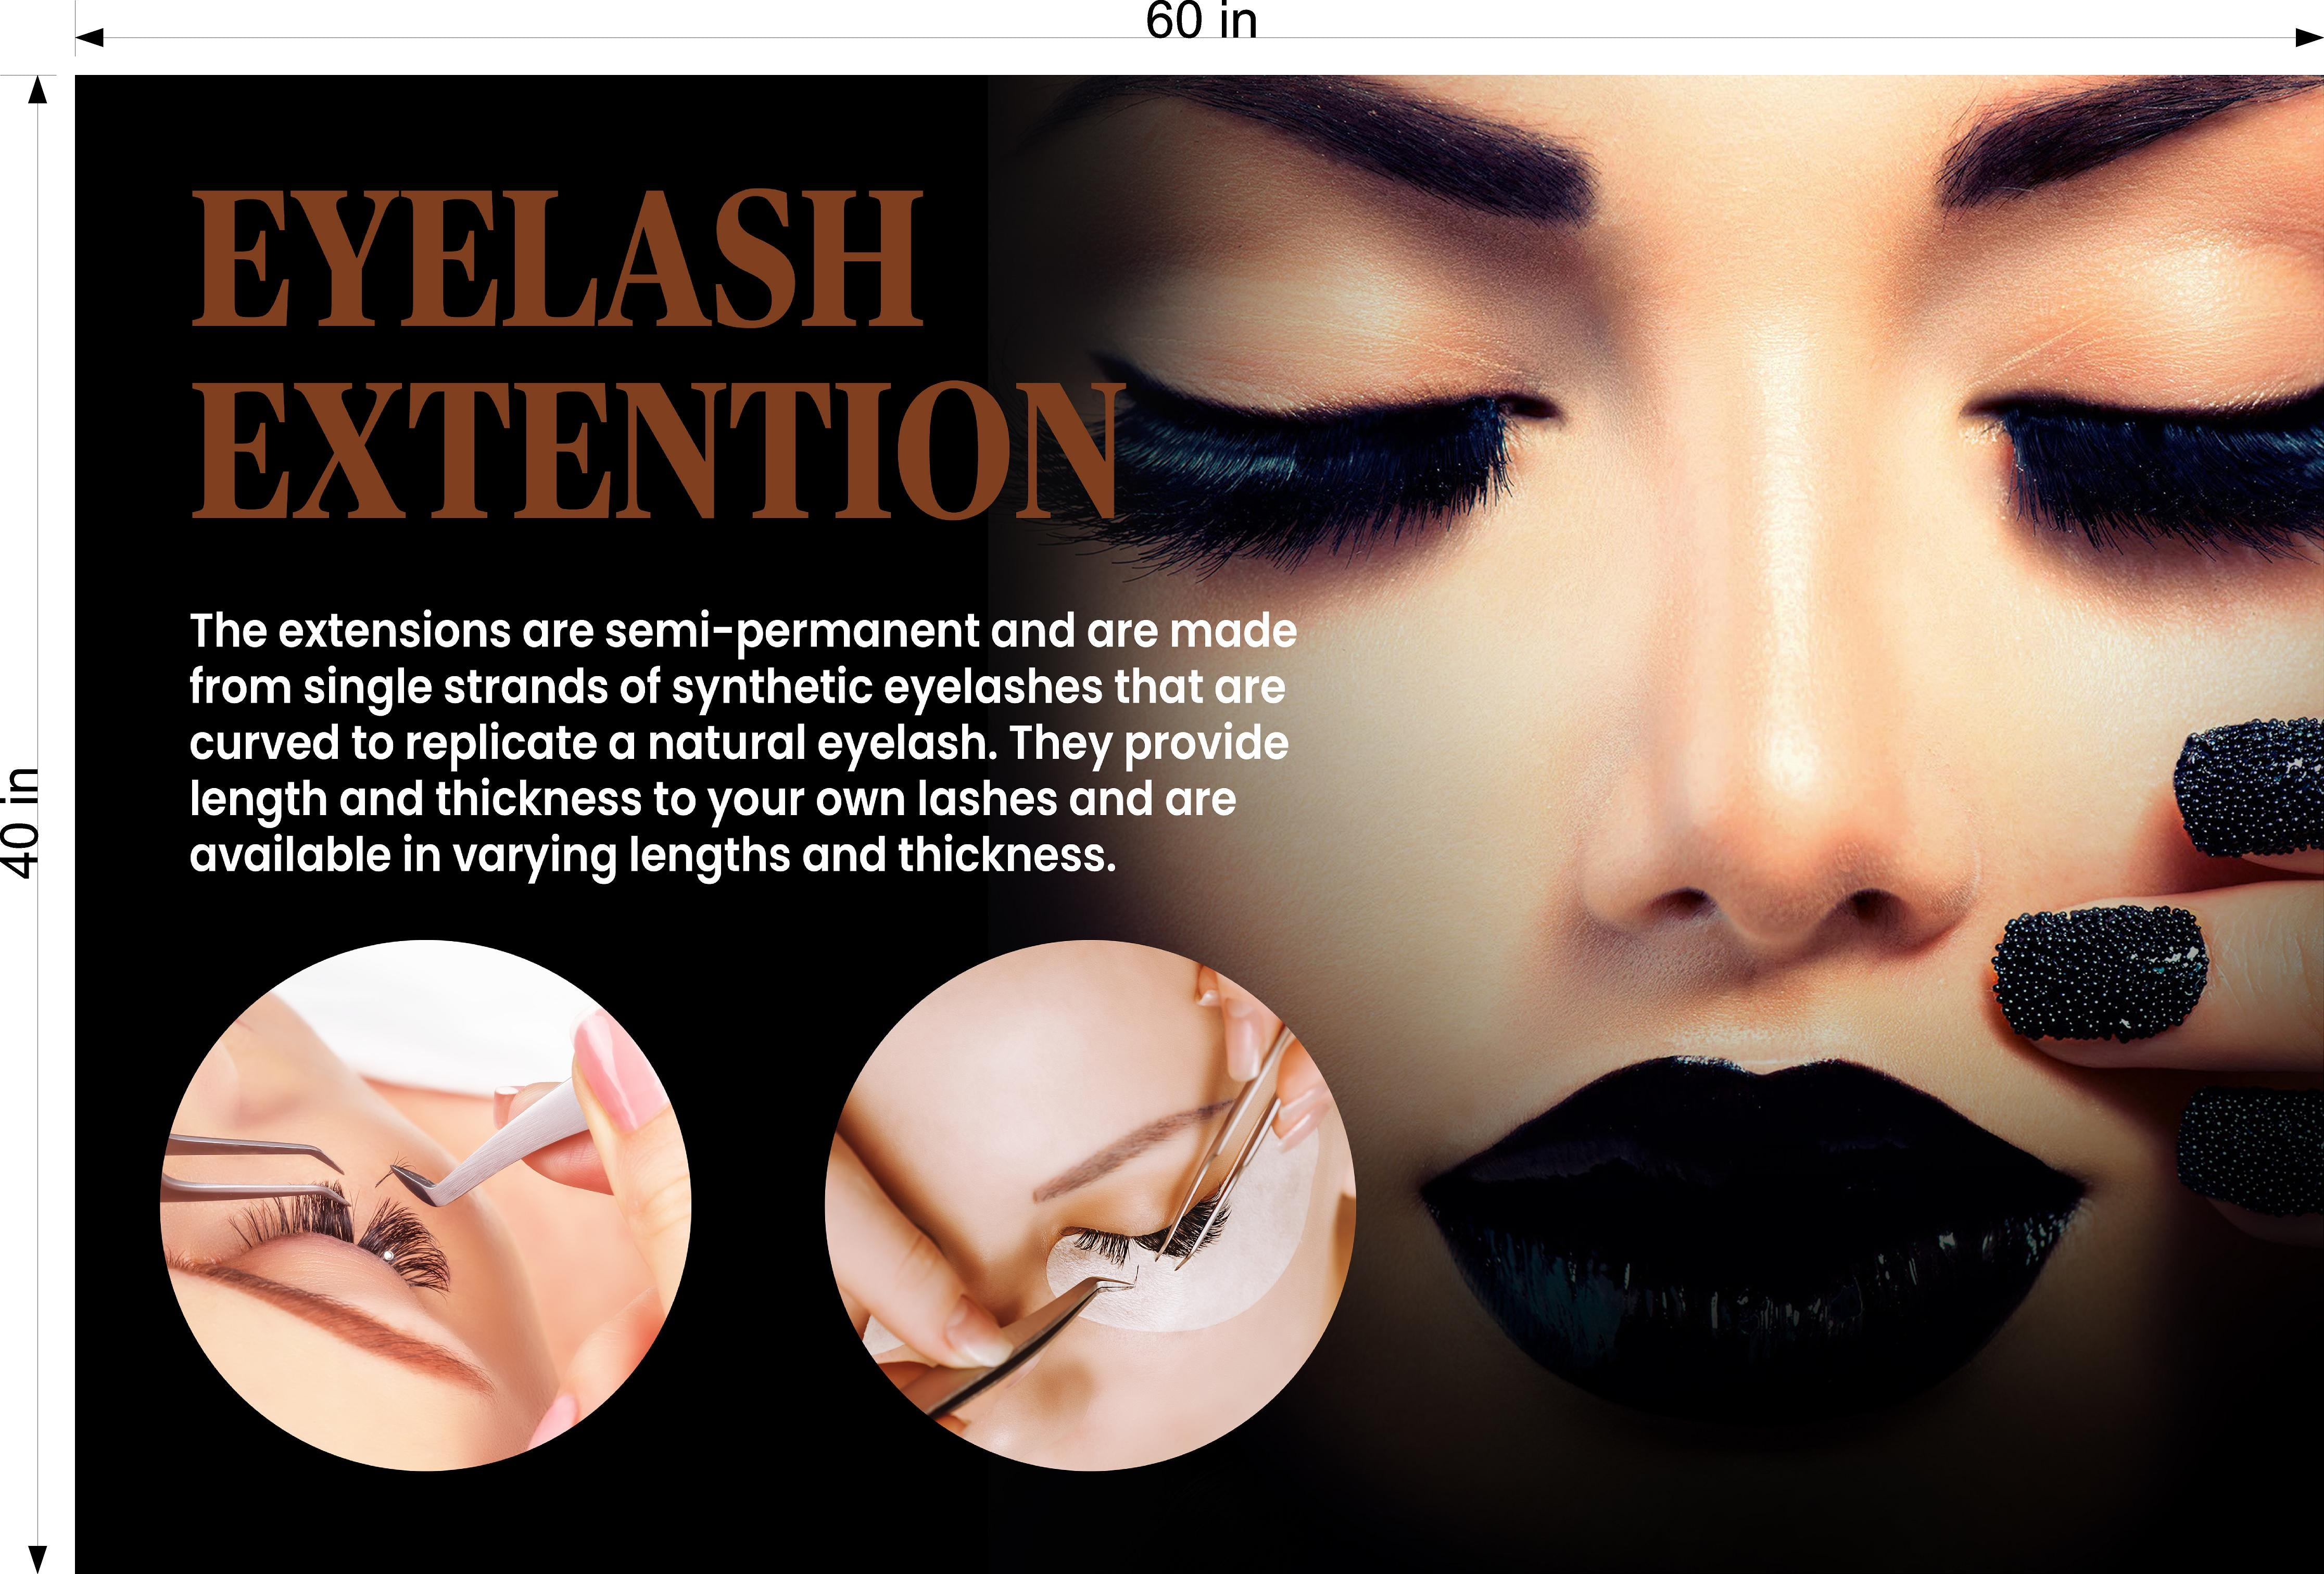 Permanent 29 Photo-Realistic Paper Poster Premium Matte Interior Inside Sign Wall Window Non-Laminated Makeup Eyebrows Lip Eyeliner Microblading Horizontal